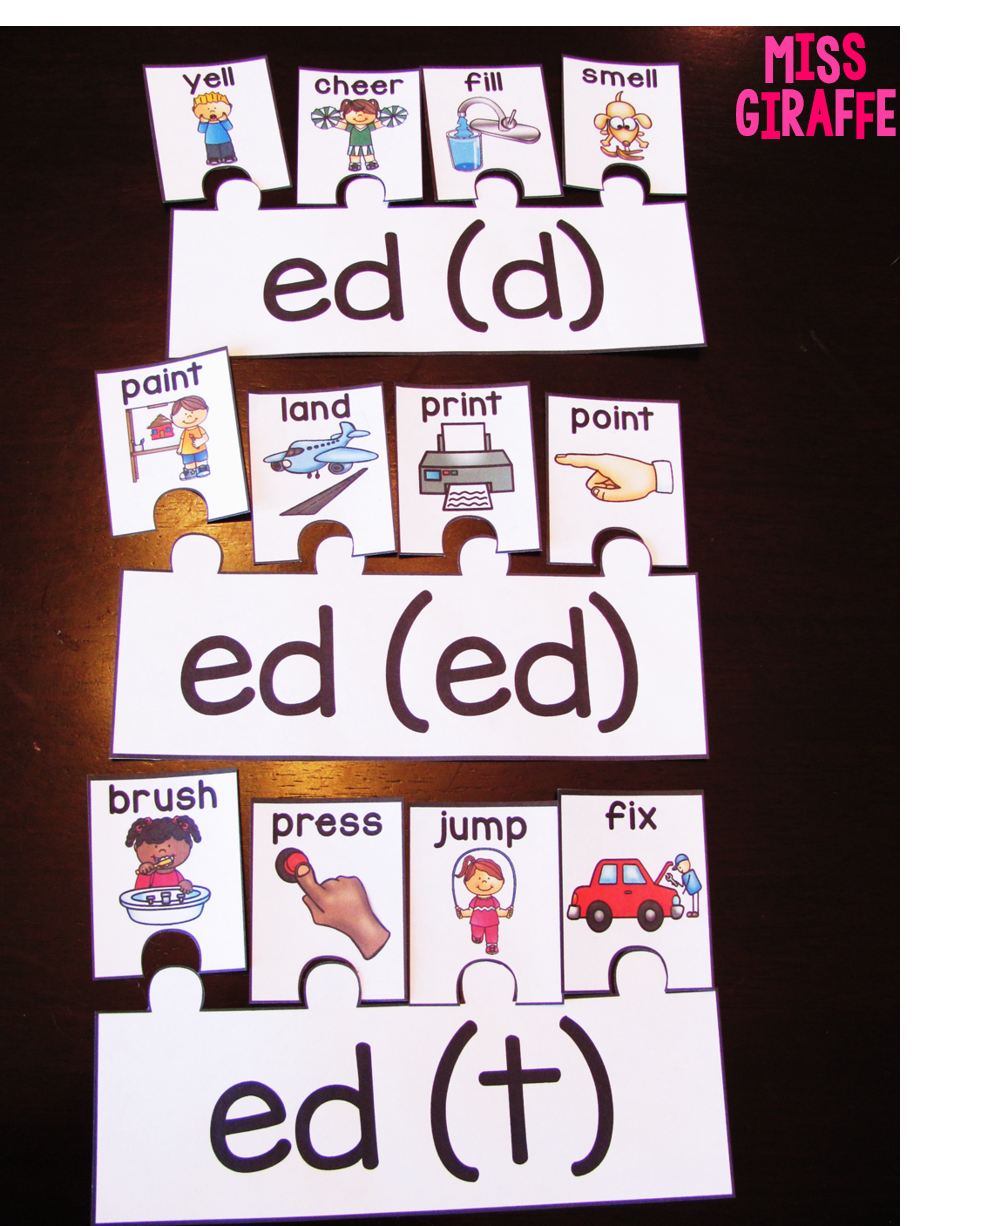 Miss giraffes class prefixes and suffixes teaching ideas for english robcynllc Gallery